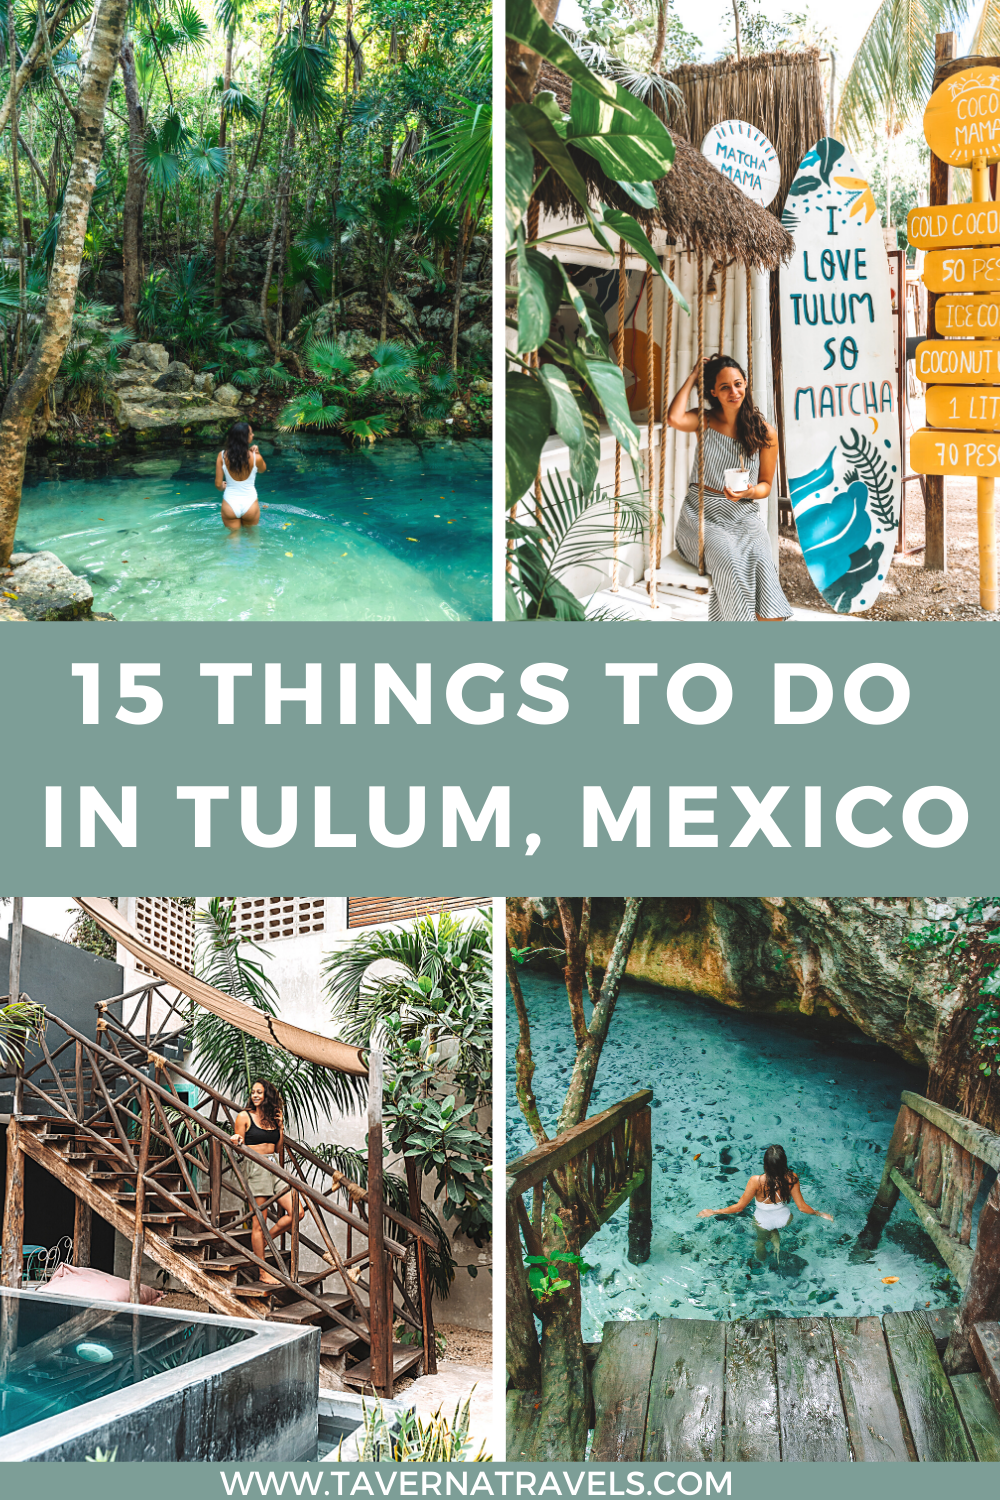 15 things to do in tulum, mexico pin